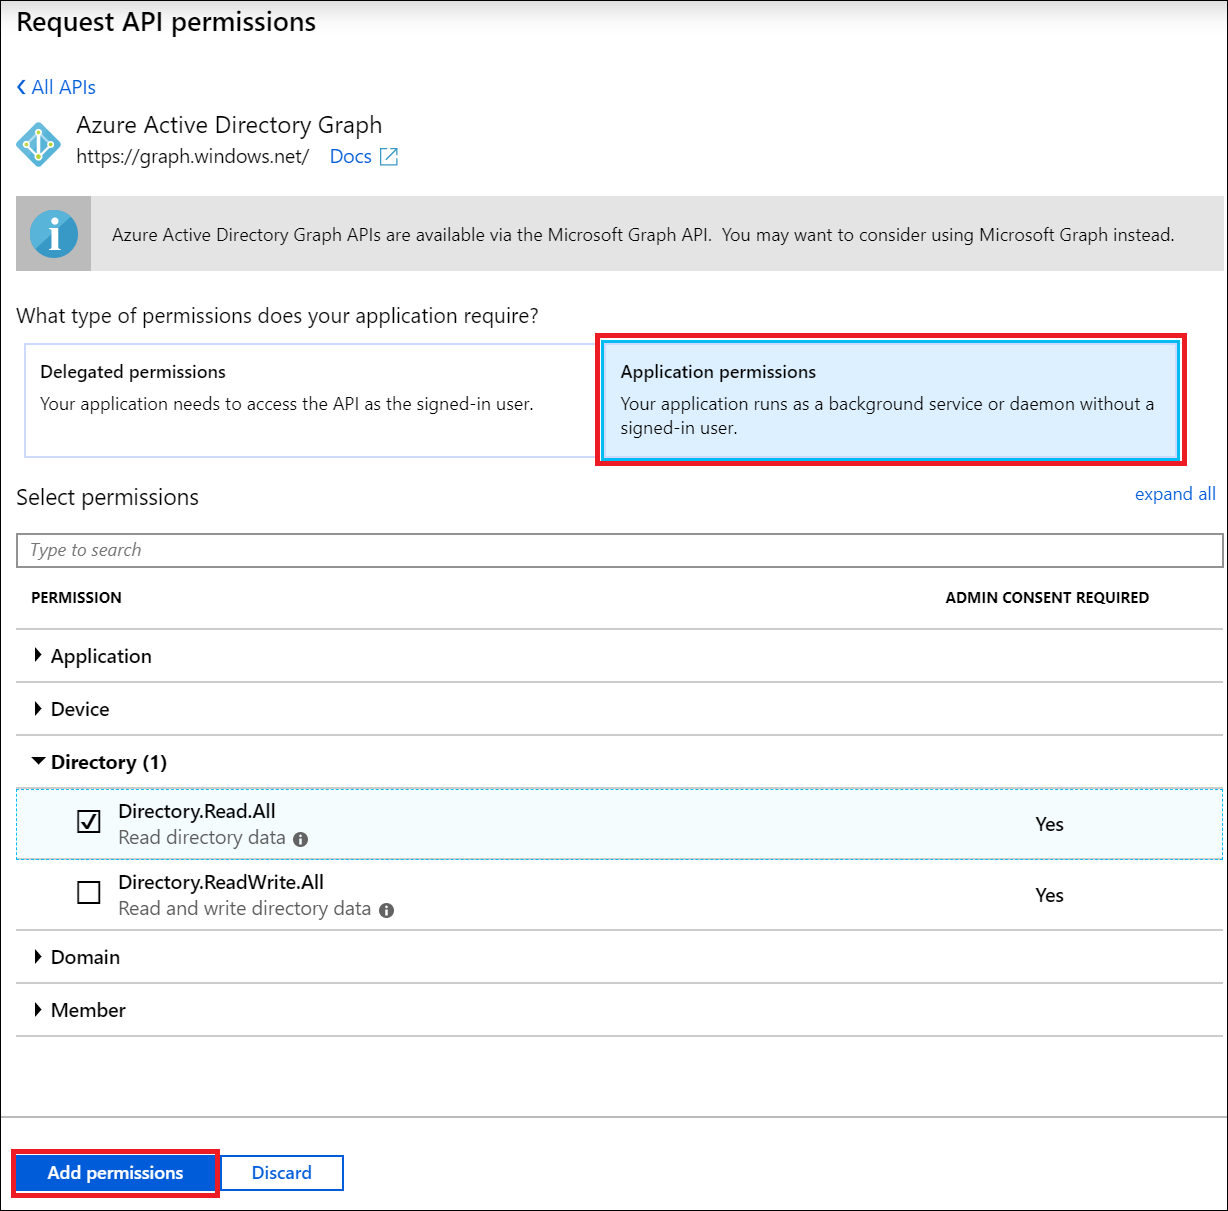 Screenshot shows the Request A P I permissions page where you can select Application permissions.